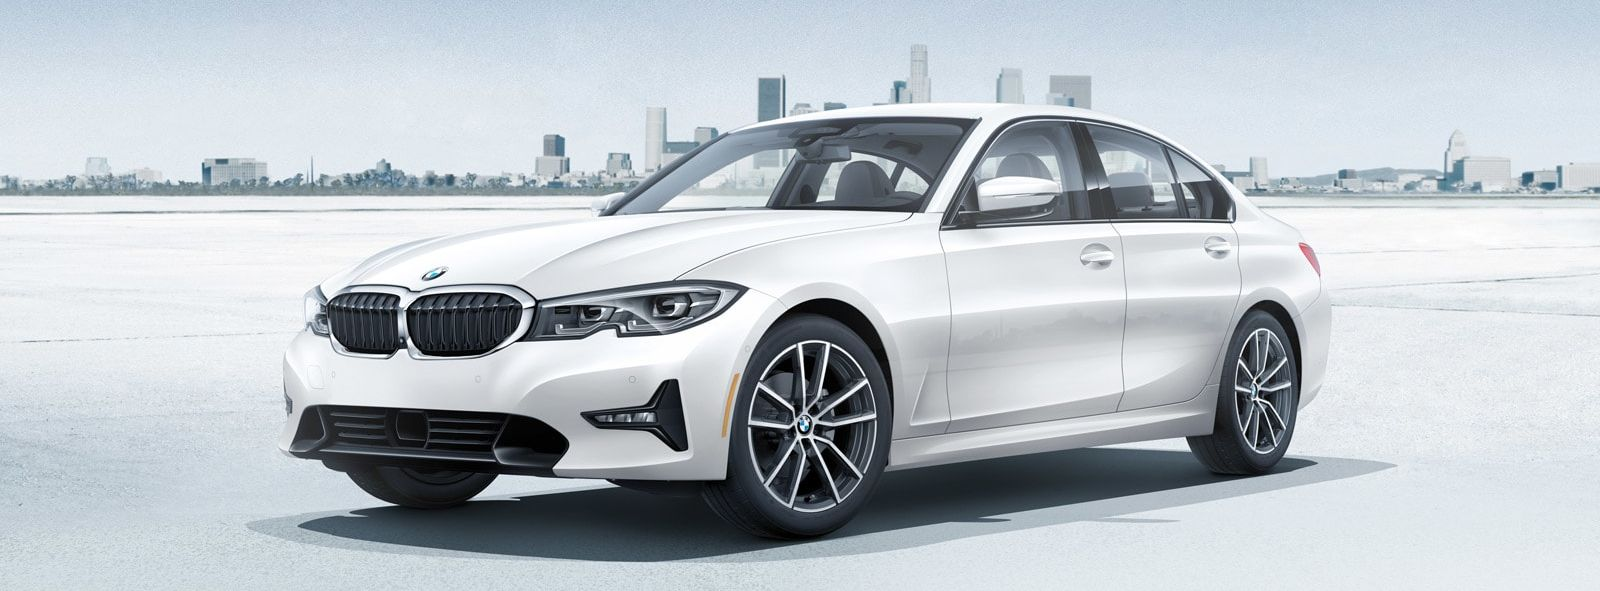 2019 BMW 3 Series for Sale near Olympia Fields, IL